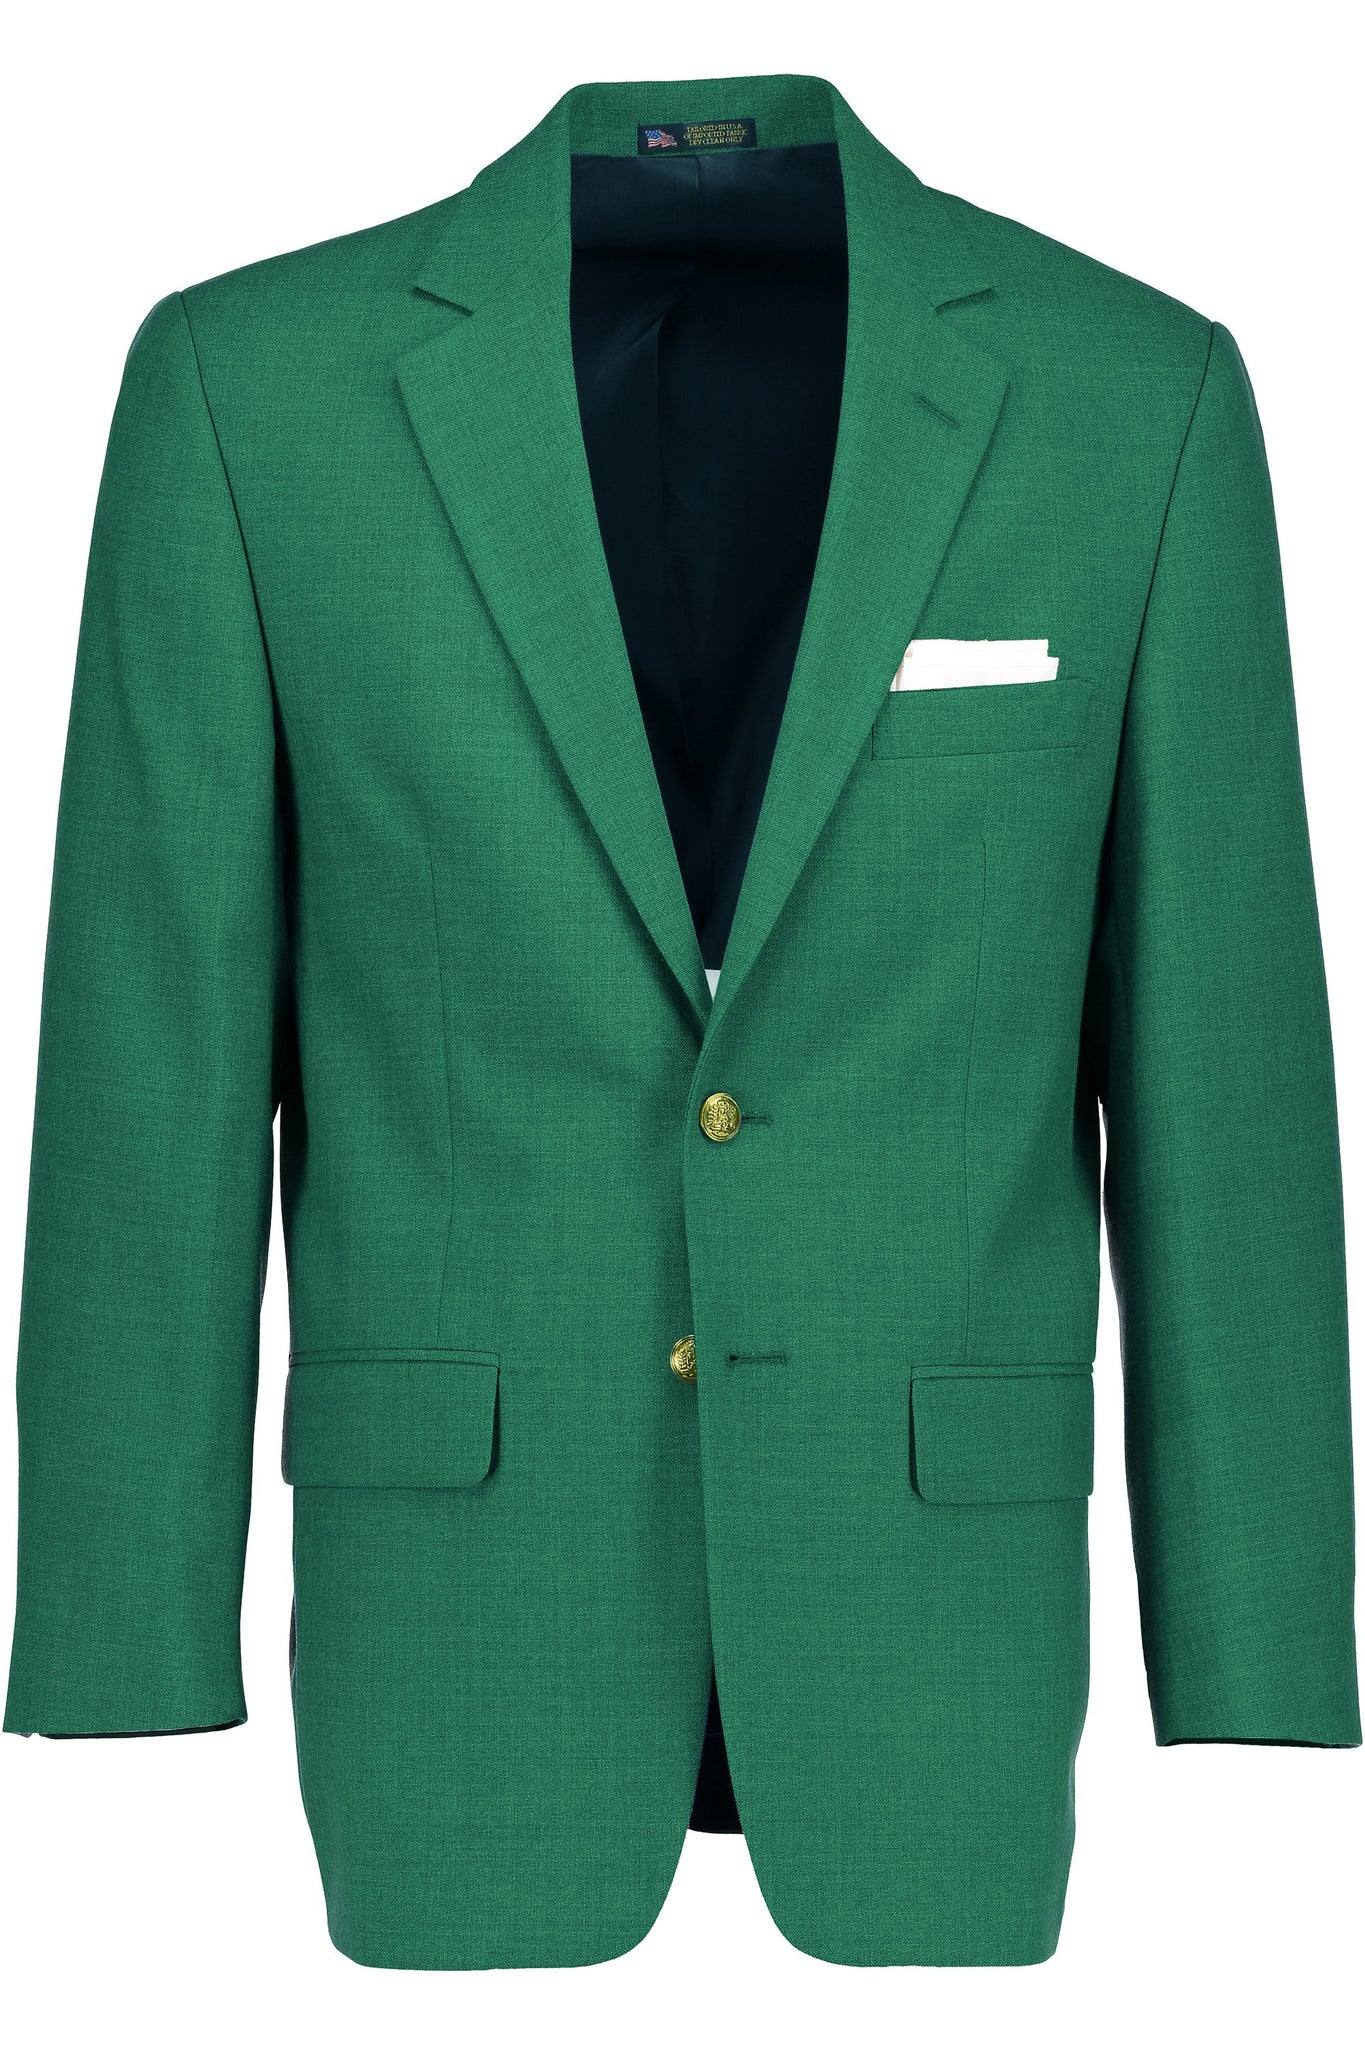 Classic Fit Traveler Augusta Green Blazer